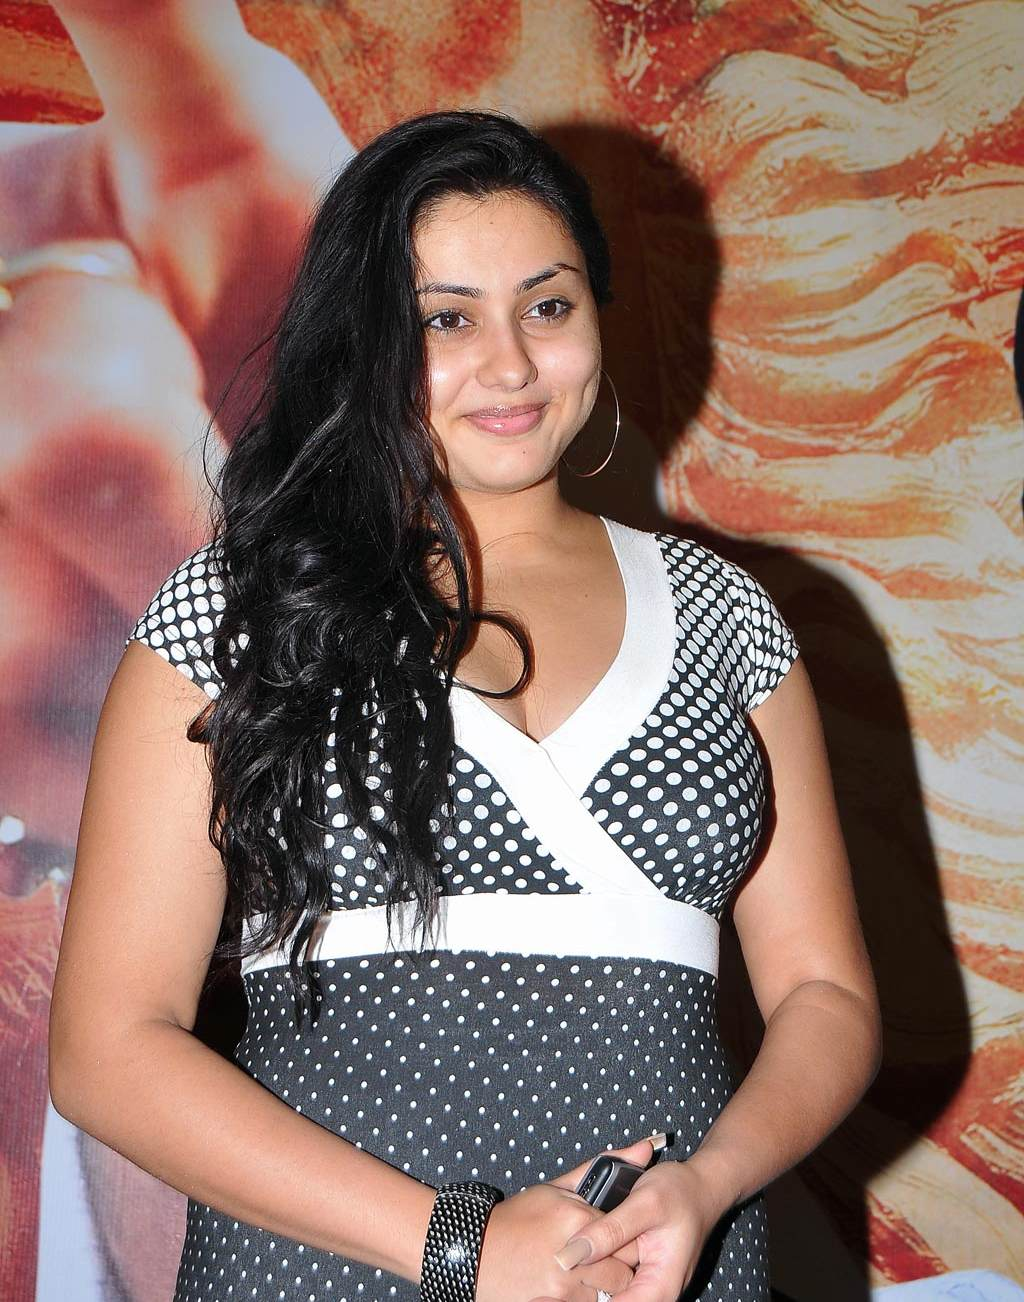 Medium Emo Hairstyles For Girls Namitha Hairstyle Picture Gallery